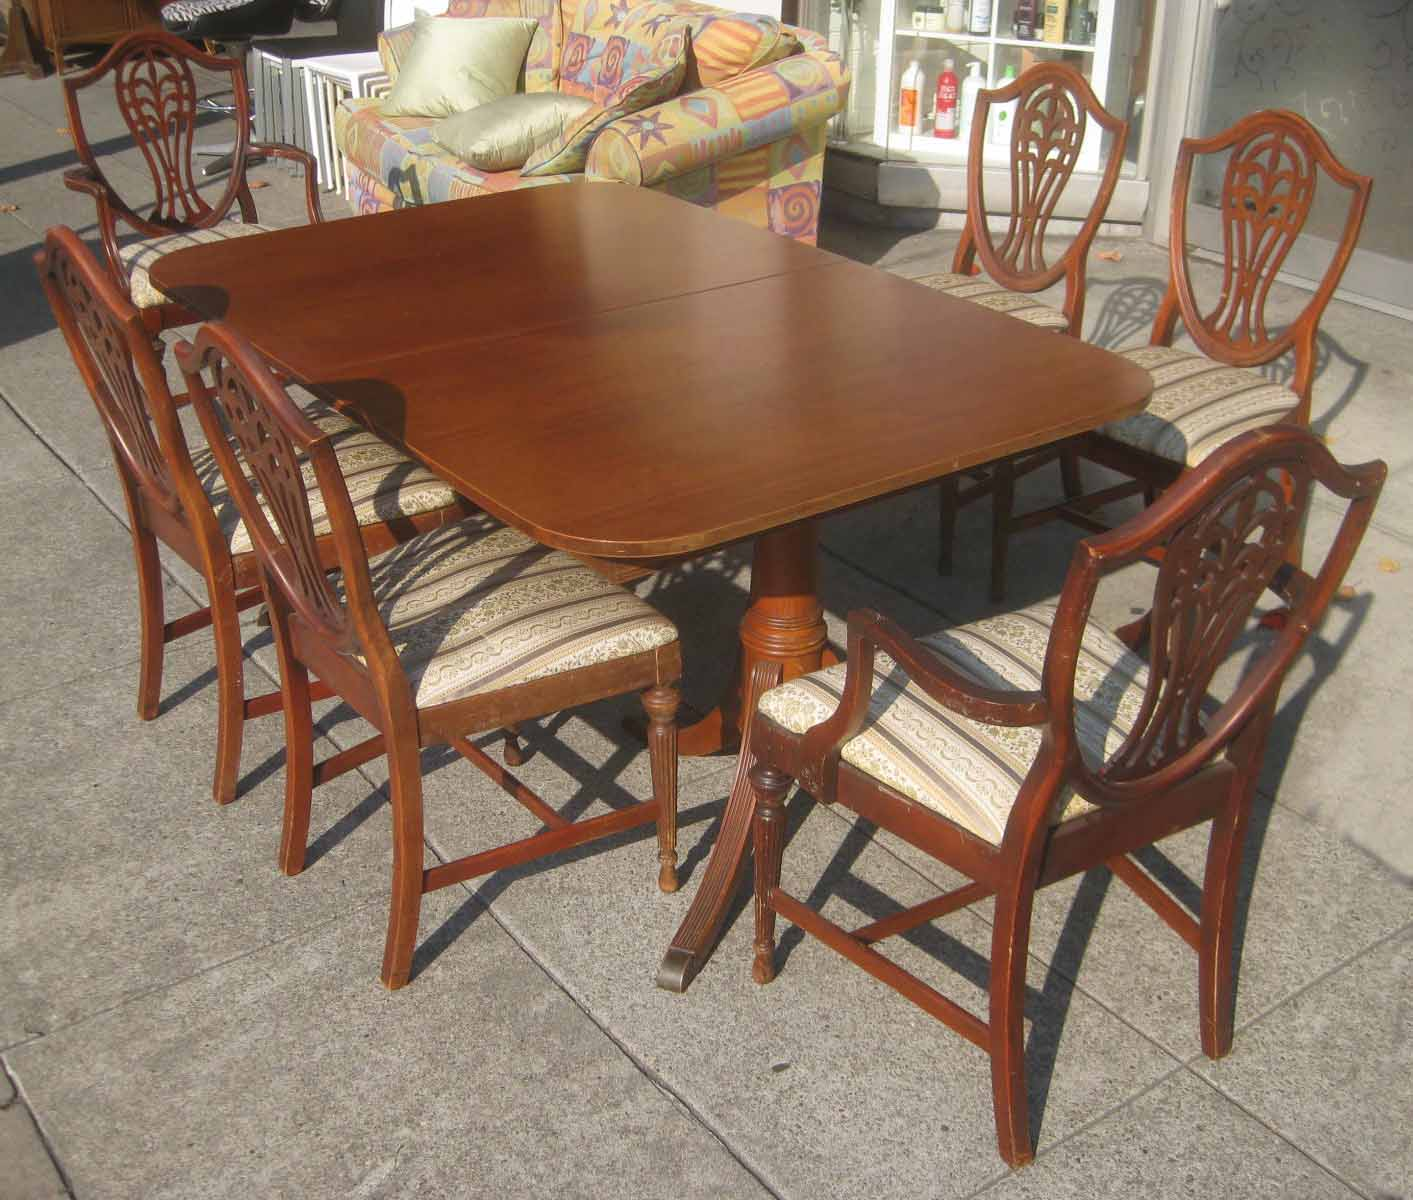 Duncan Phyfe Chairs Boat Bean Bag Uhuru Furniture And Collectibles Sold Table